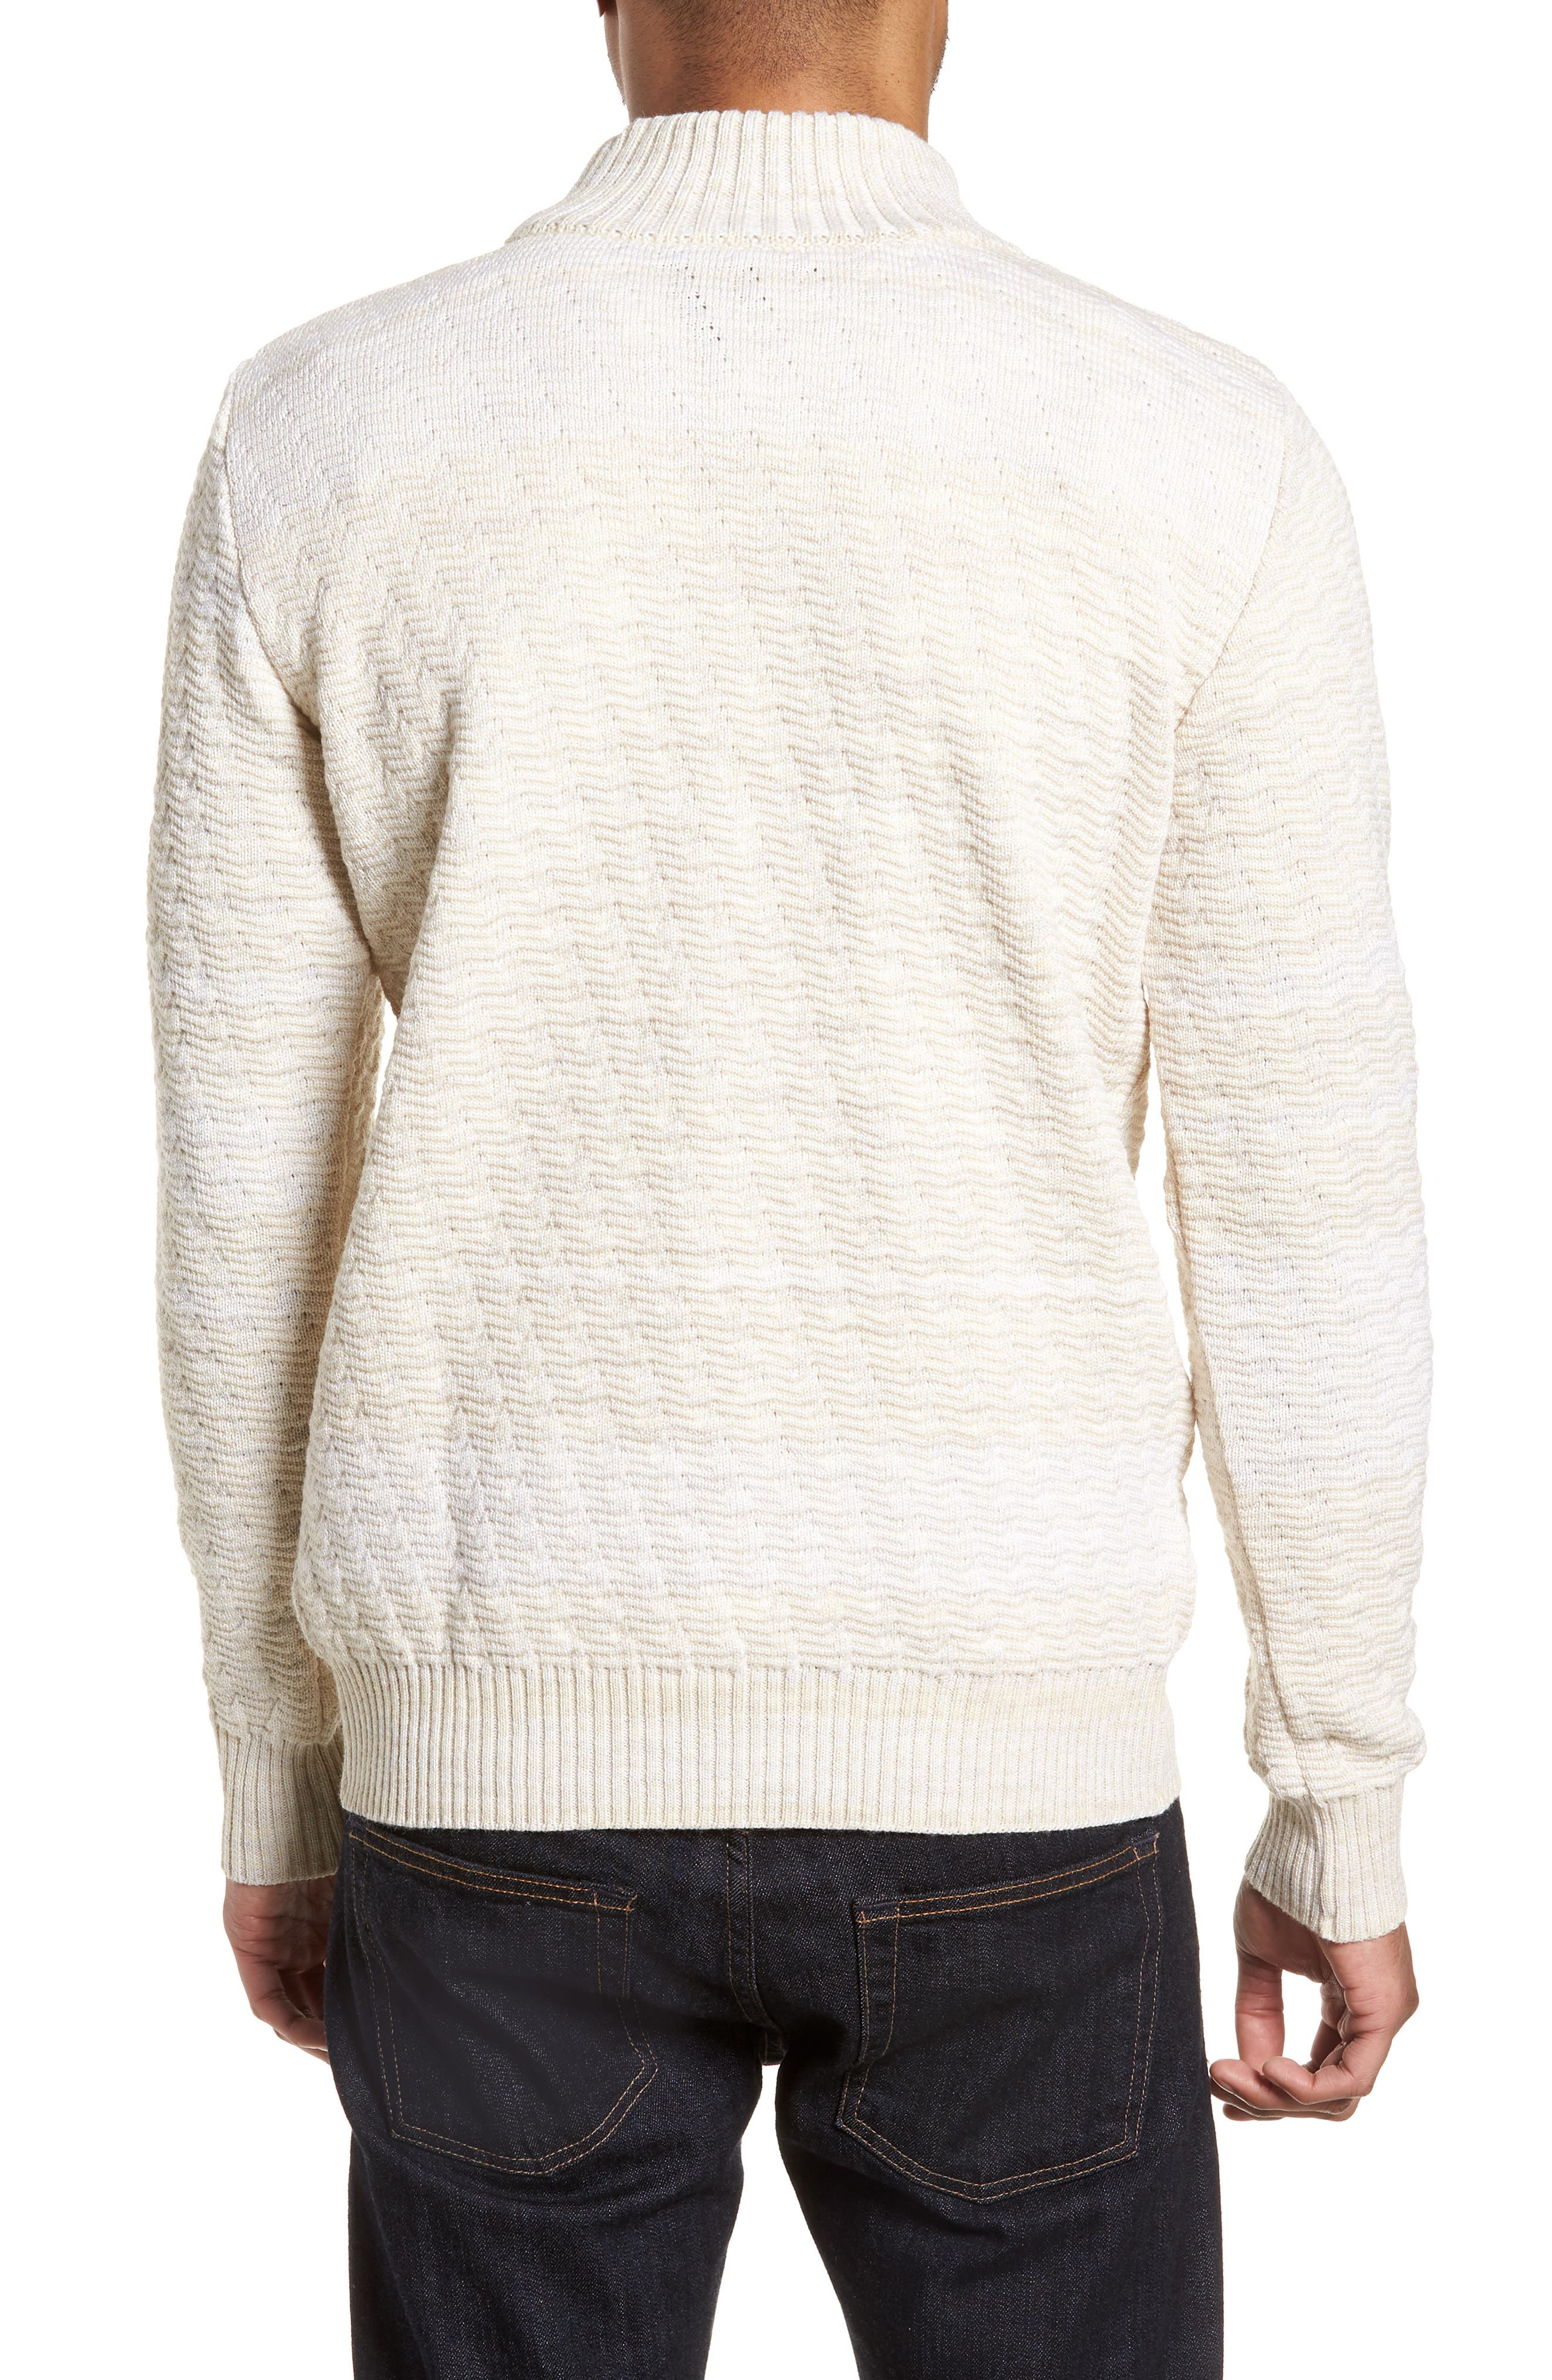 Evident Wool Turtleneck Sweater,                             Alternate thumbnail 2, color,                             250